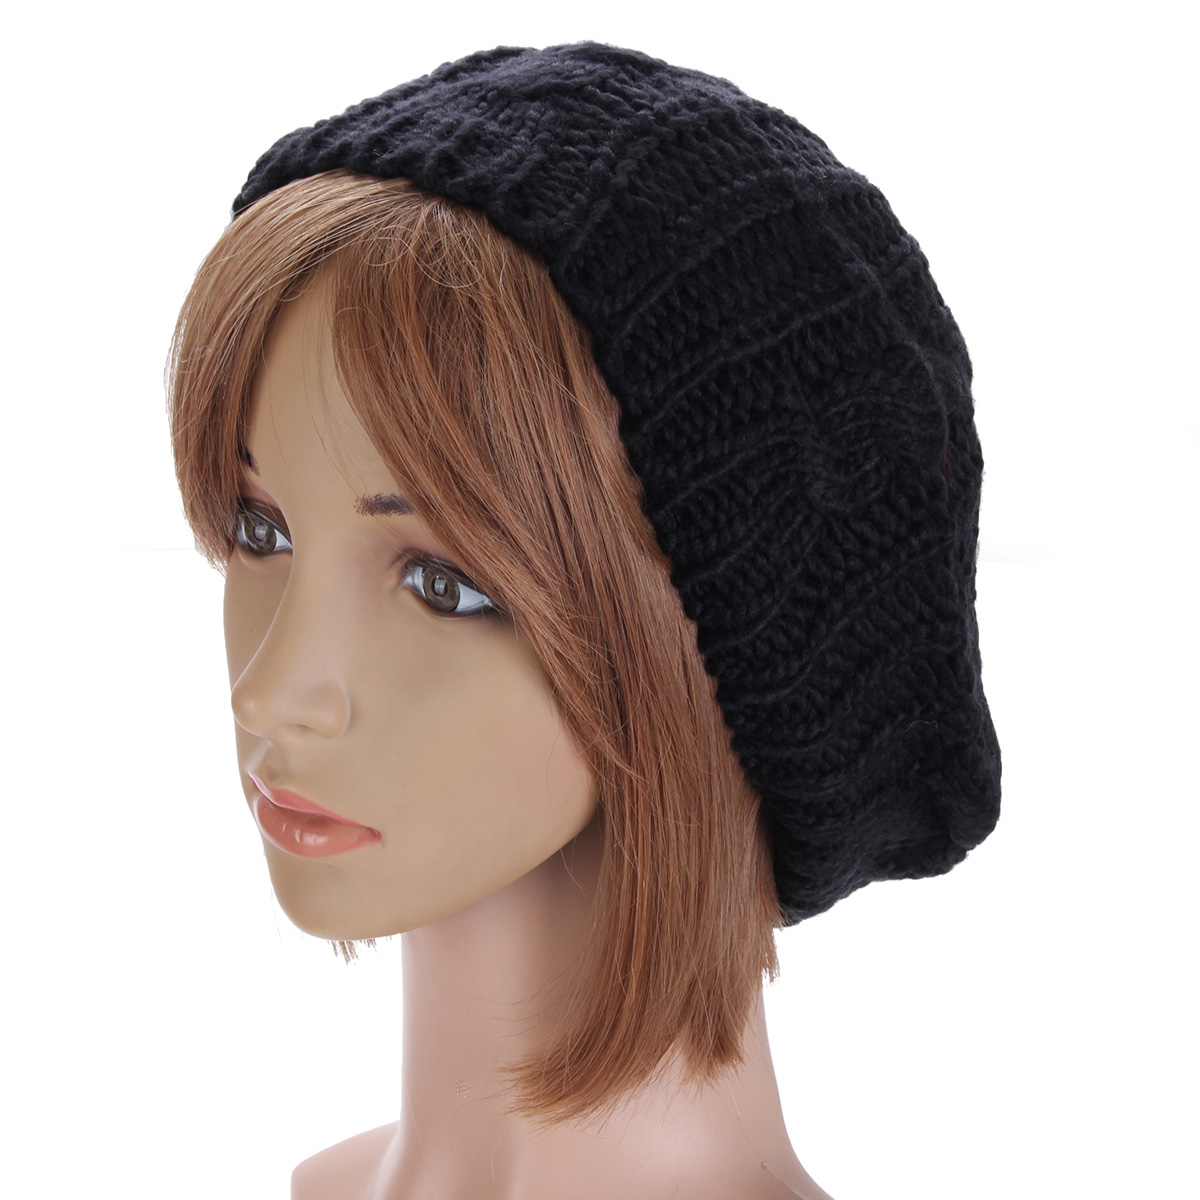 42685e90d13 New Women Lady Winter Warm Knitted Crochet Slouch Baggy Beret Beanie Hat Cap